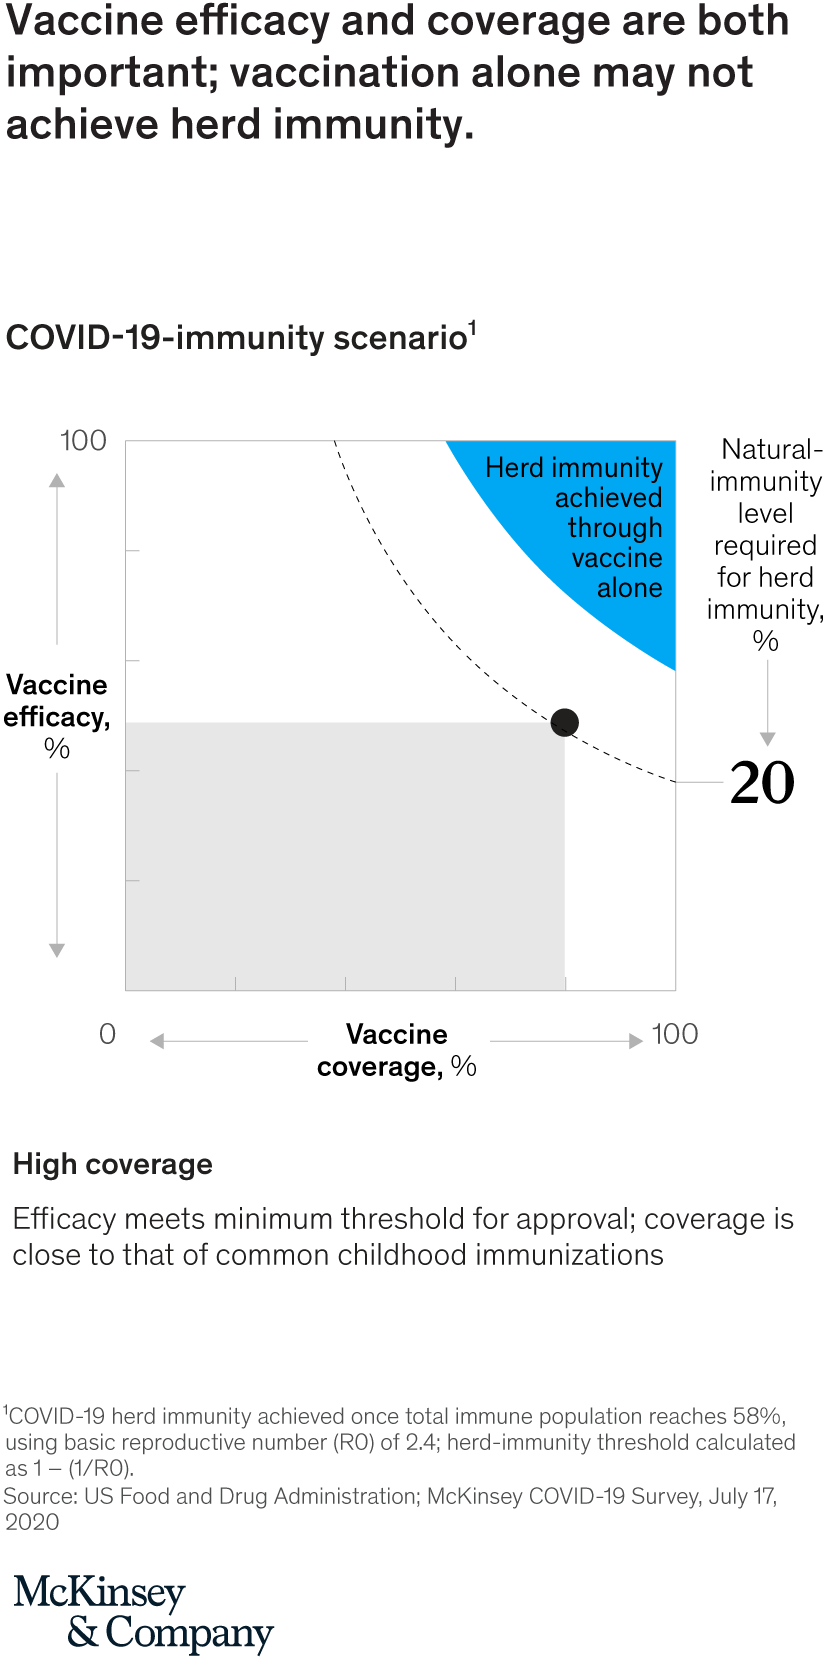 When Will The Covid-19 Pandemic End? | Mckinsey